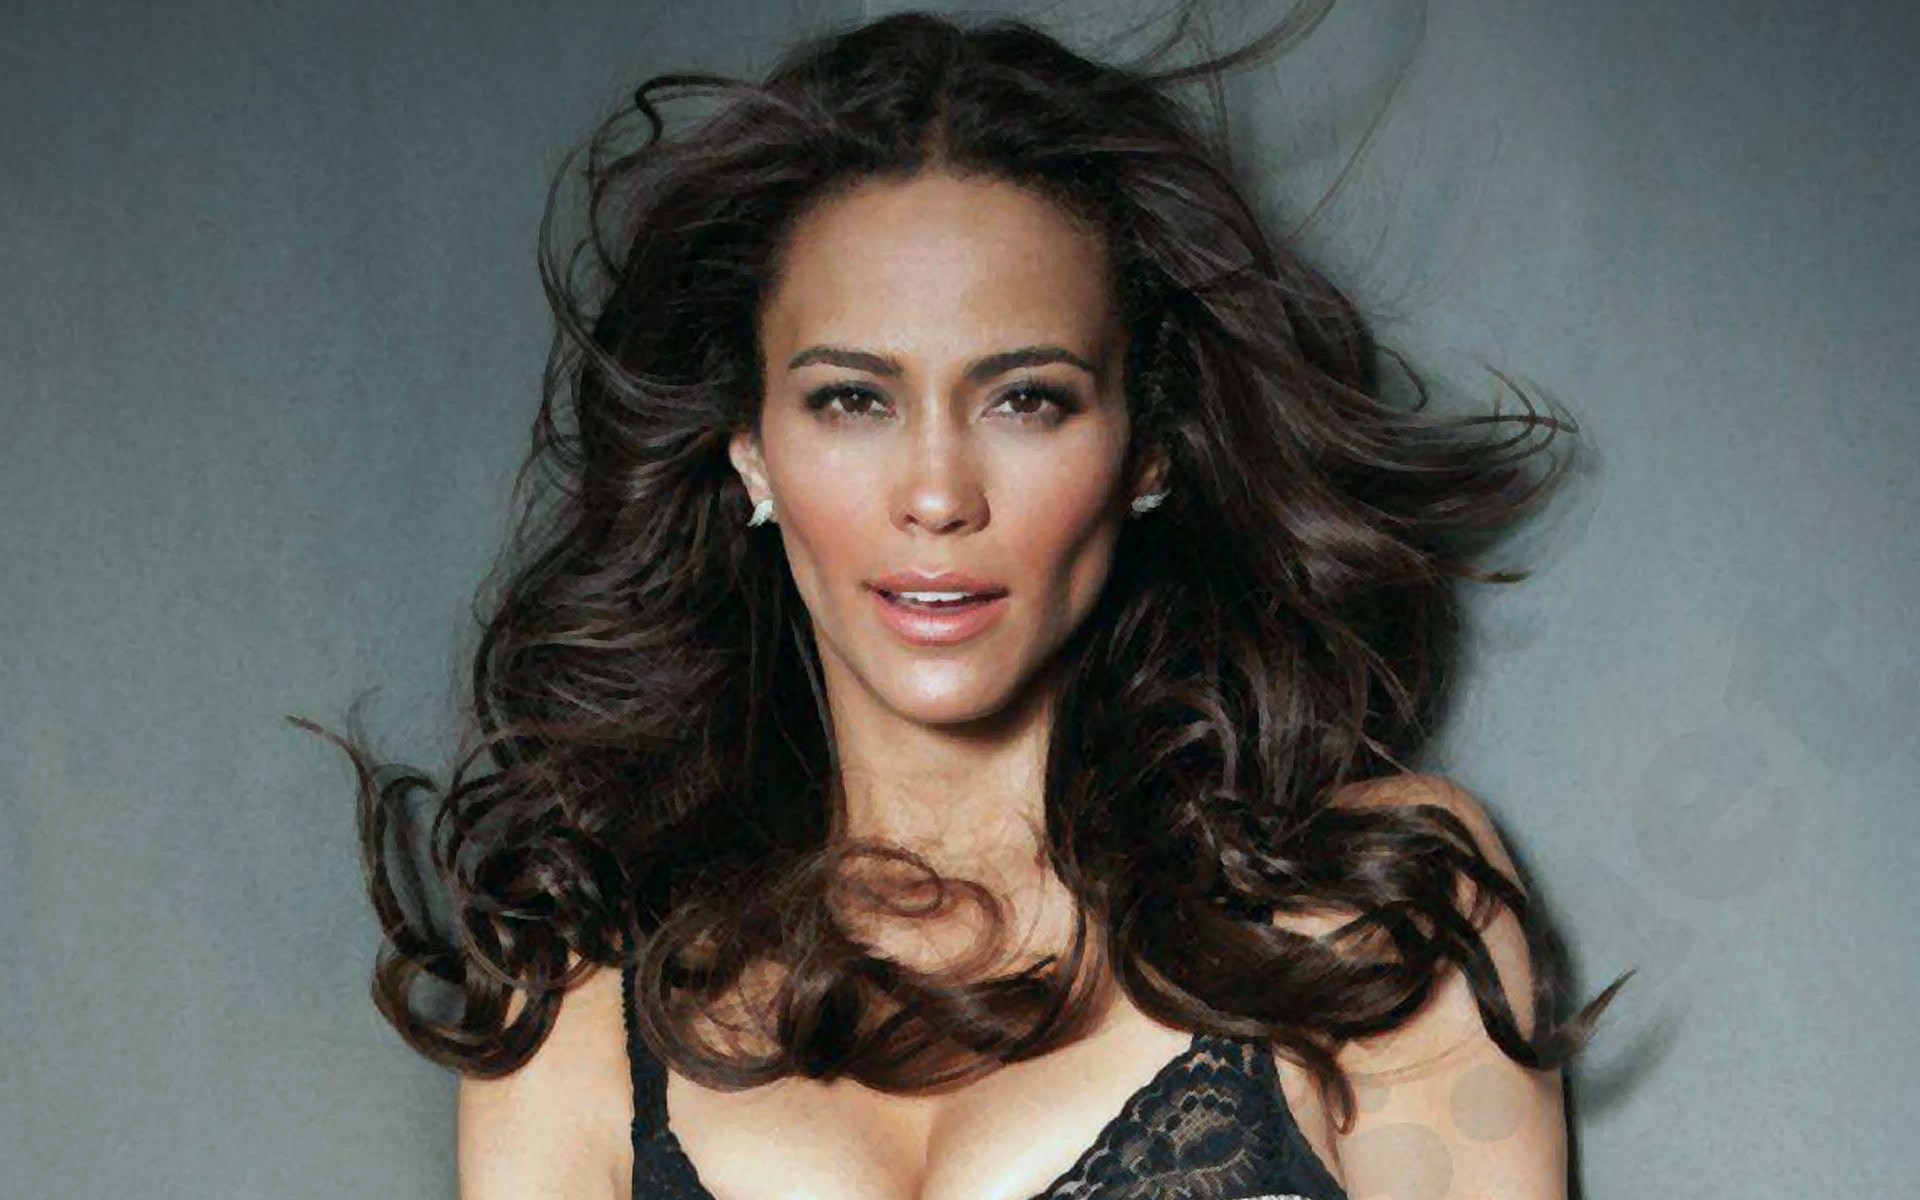 paula patton wallpapers high resolution and quality download